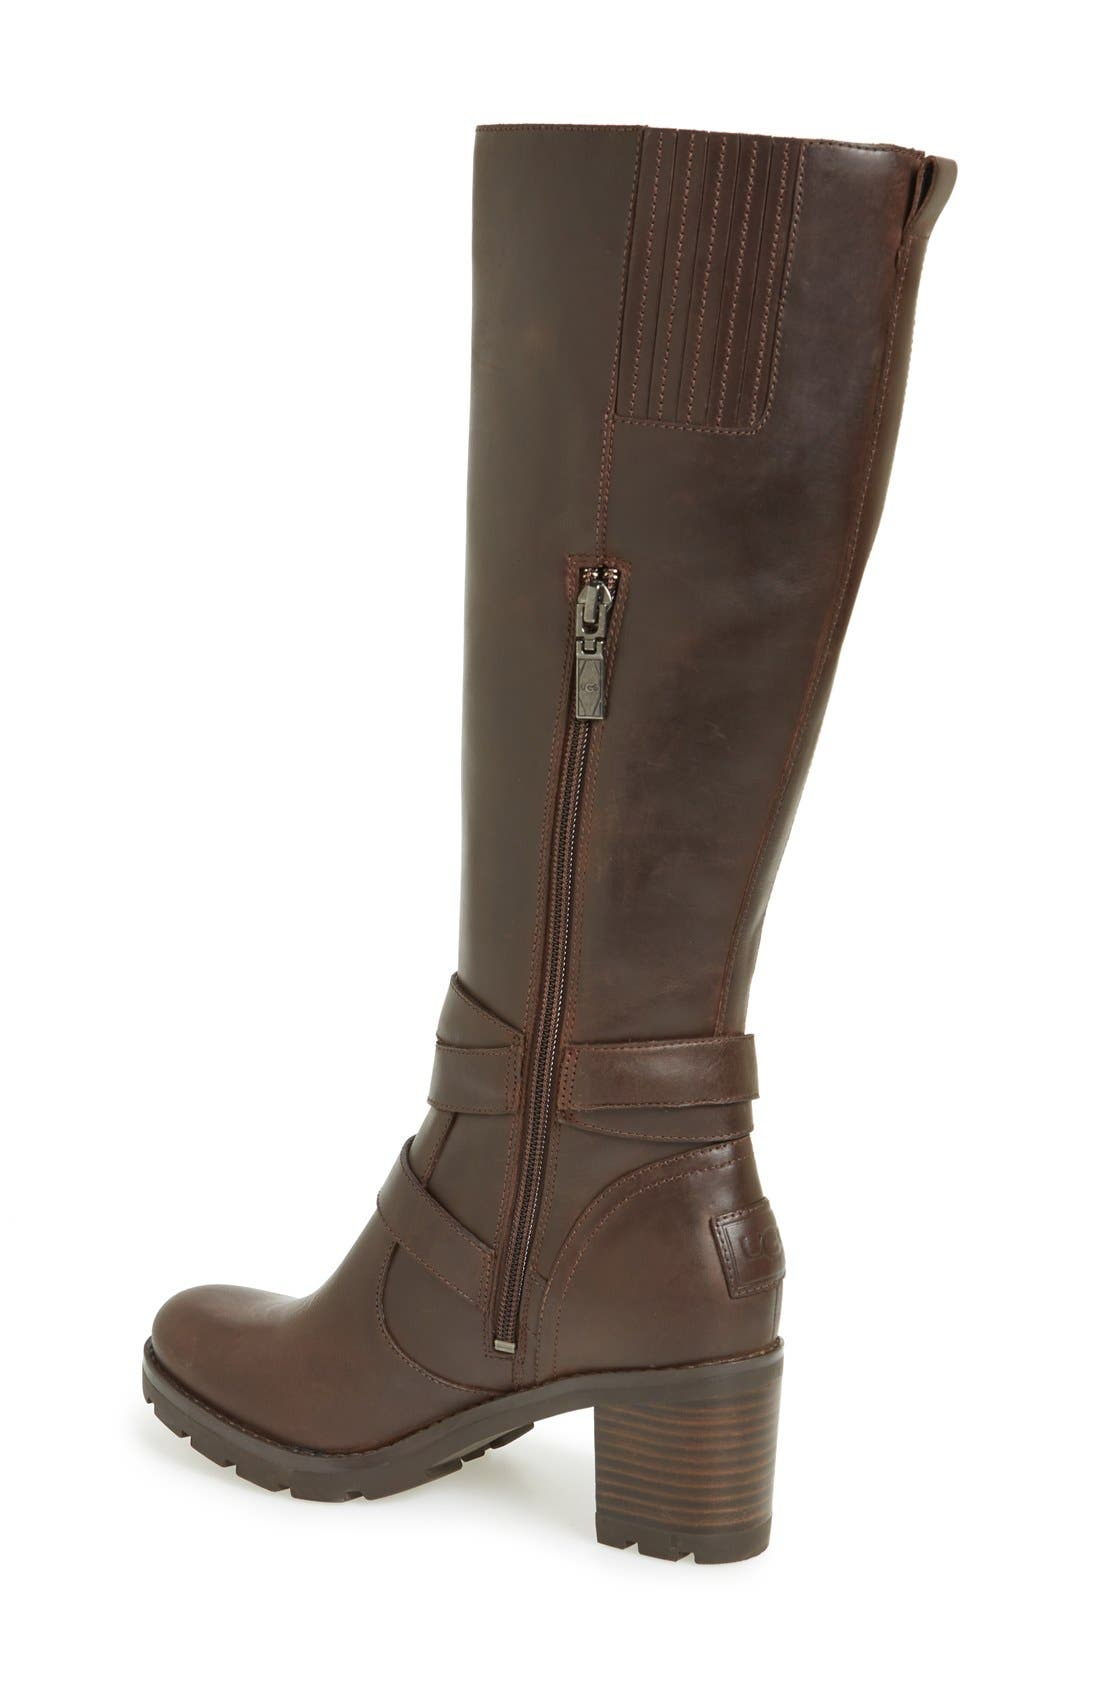 Alternate Image 2  - UGG® 'Lana' Water Resistant Genuine Shearling Lined Leather Boot (Women)